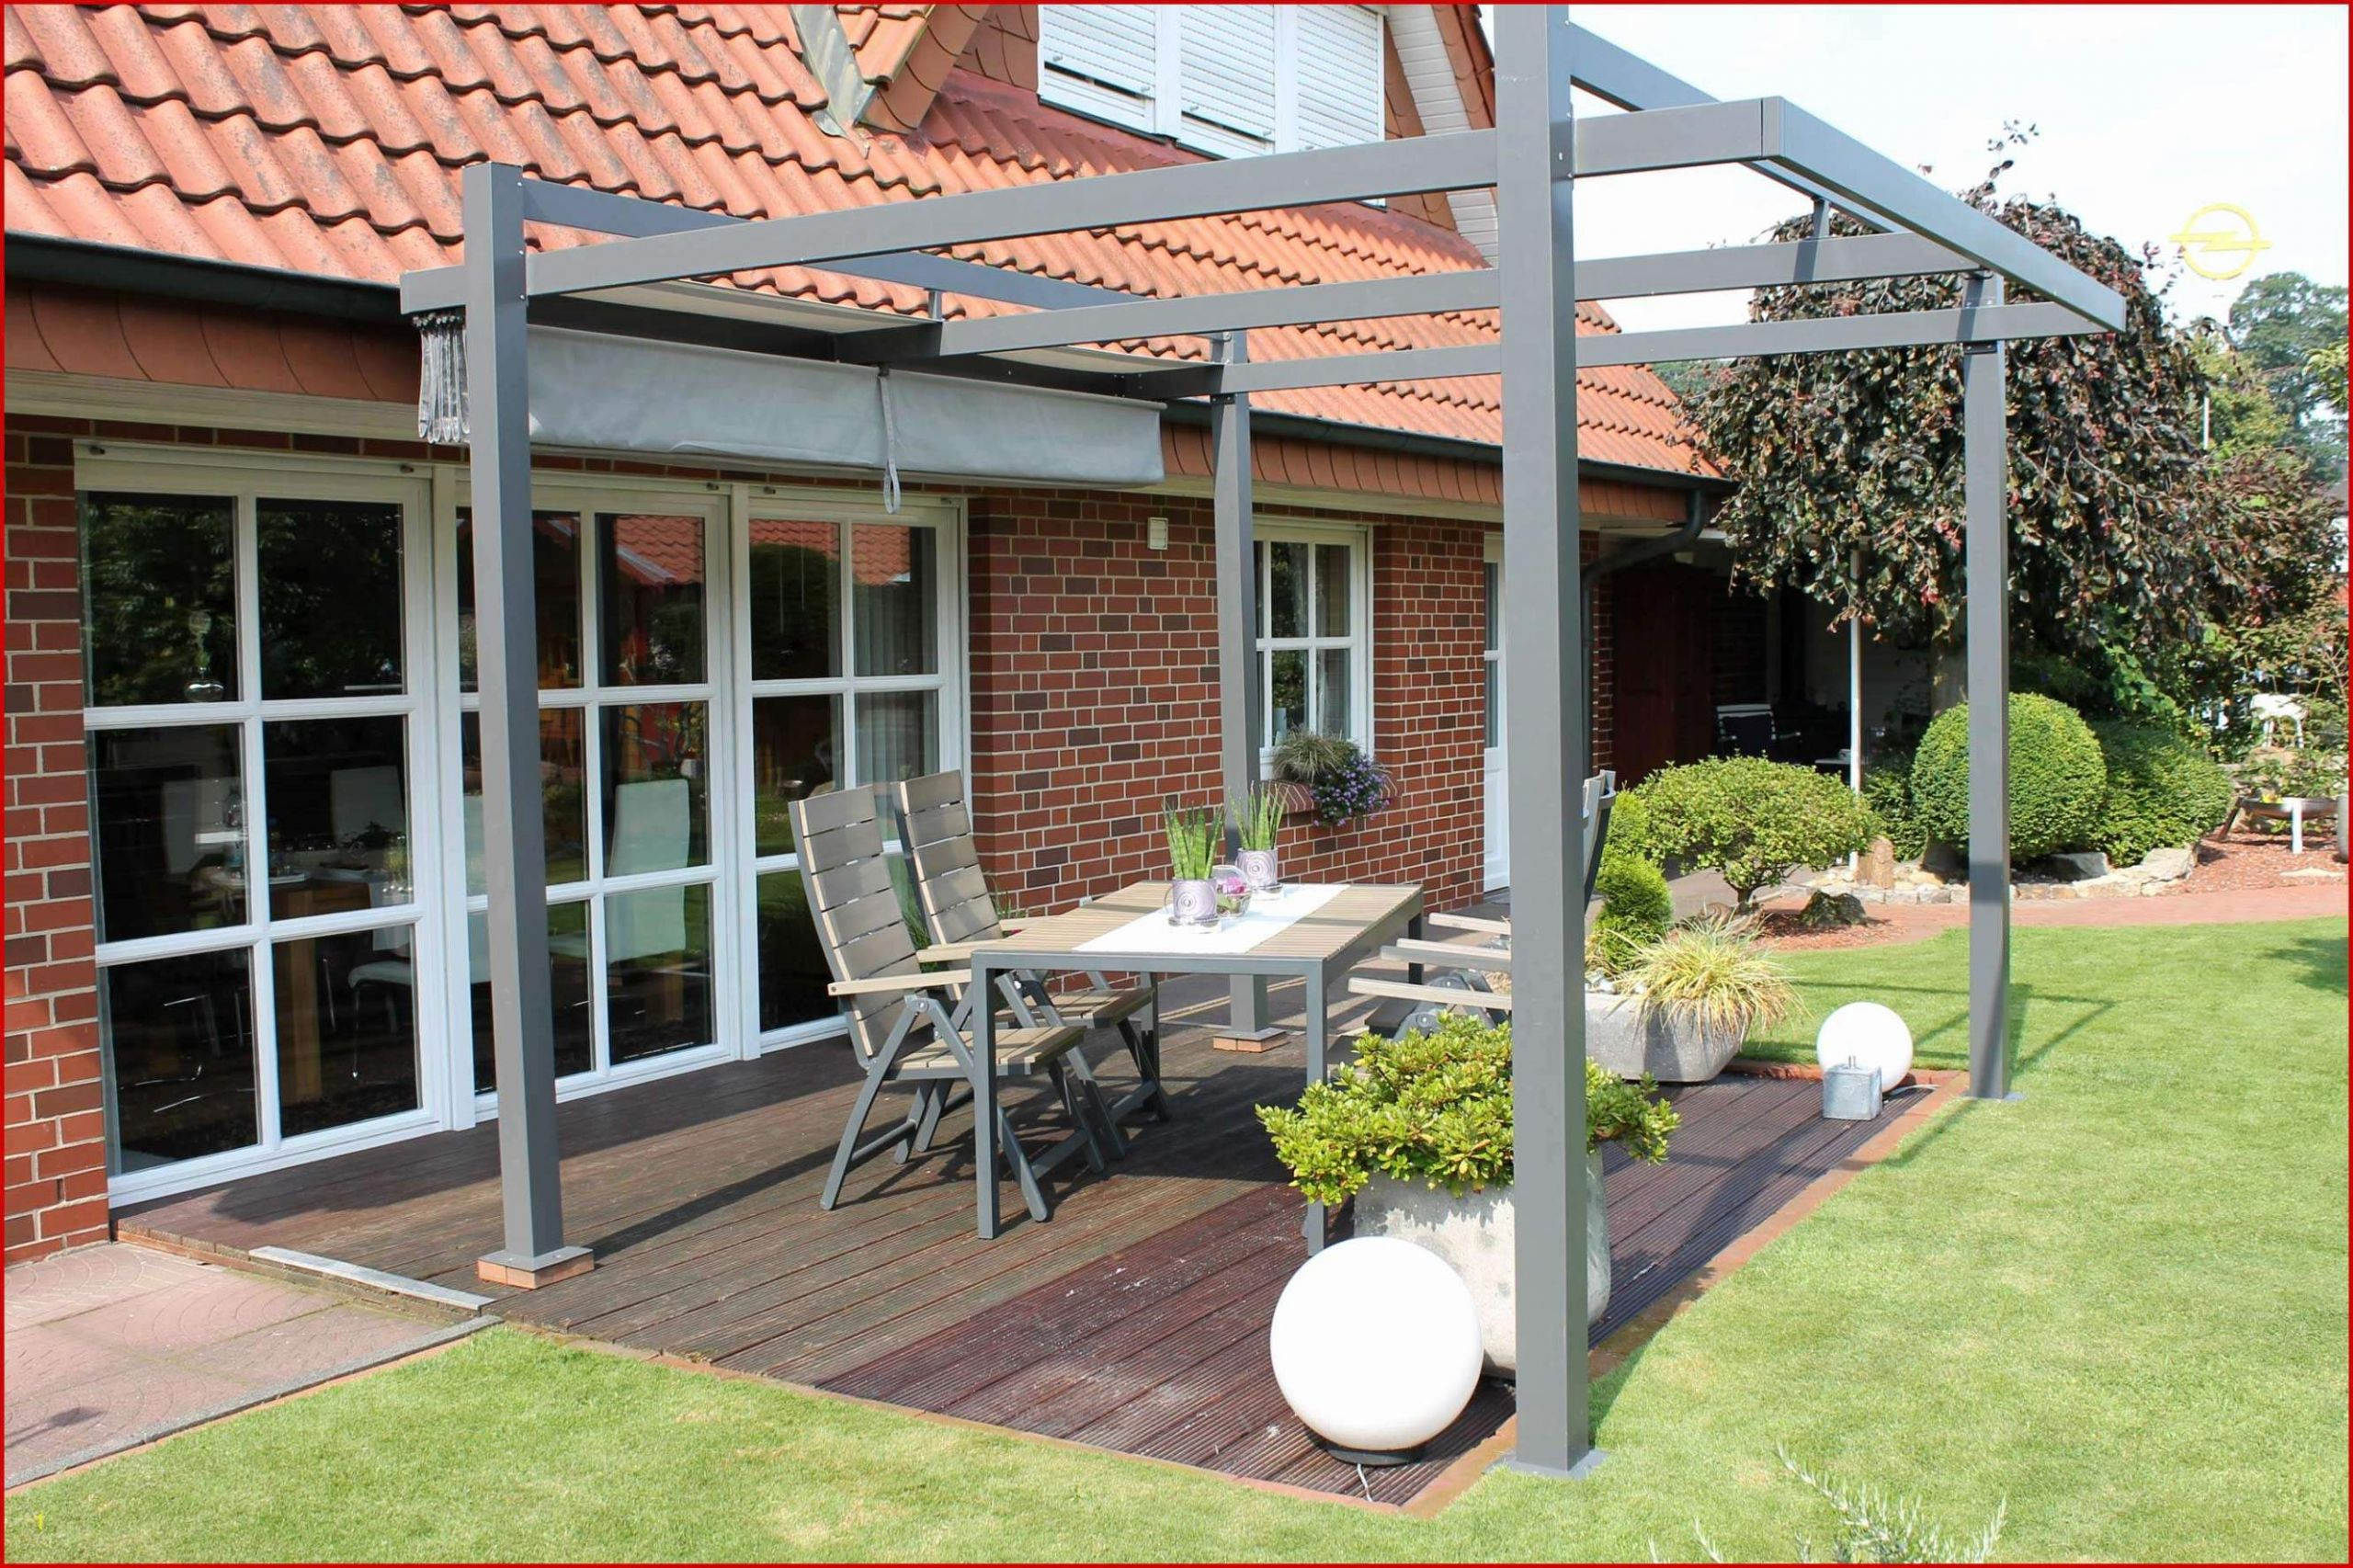 46 neu terrassenuberdachung aus holland stock wintergarten aus holland wintergarten aus holland 4